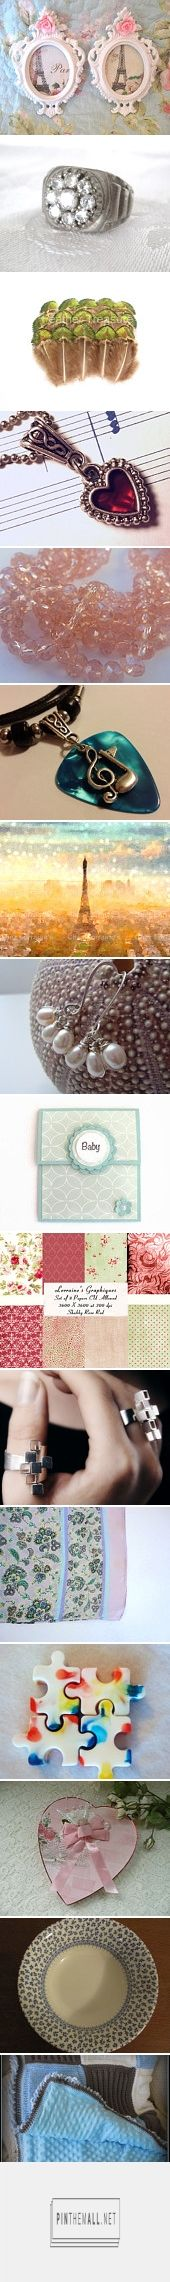 Subtle Beauty by Sandy Stark on Etsy - created via https://pinthemall.net